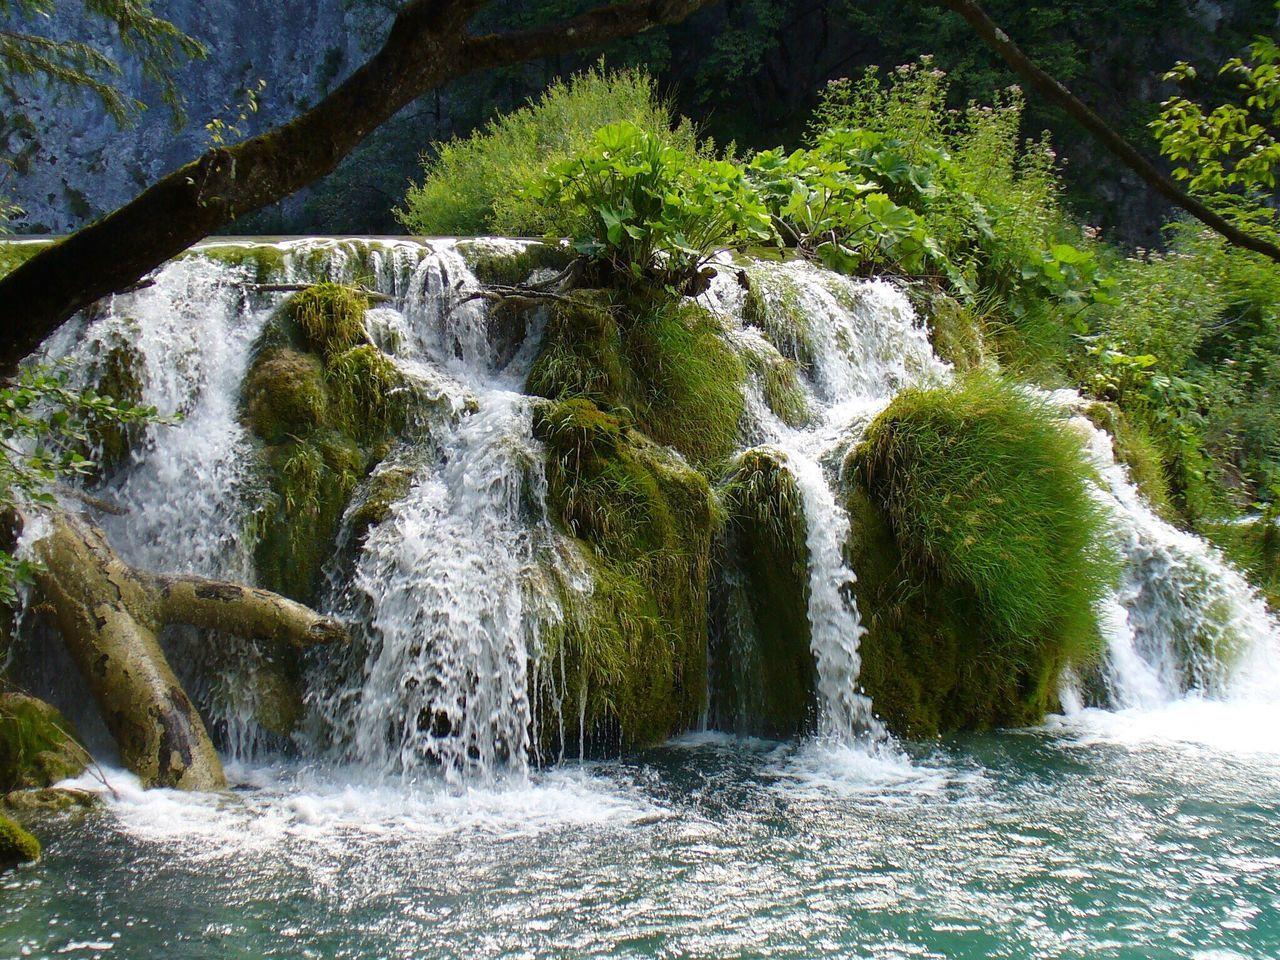 Waterfall Water Nature Scenics Beauty In Nature Tranquility Idyllic Forest No People Outdoors Vacations Tree Motion Day Freshness Lake Park Croatia Plitvice National Park Plitvice Lakes National Park Plitvice Beauty In Nature Moss Grass Green